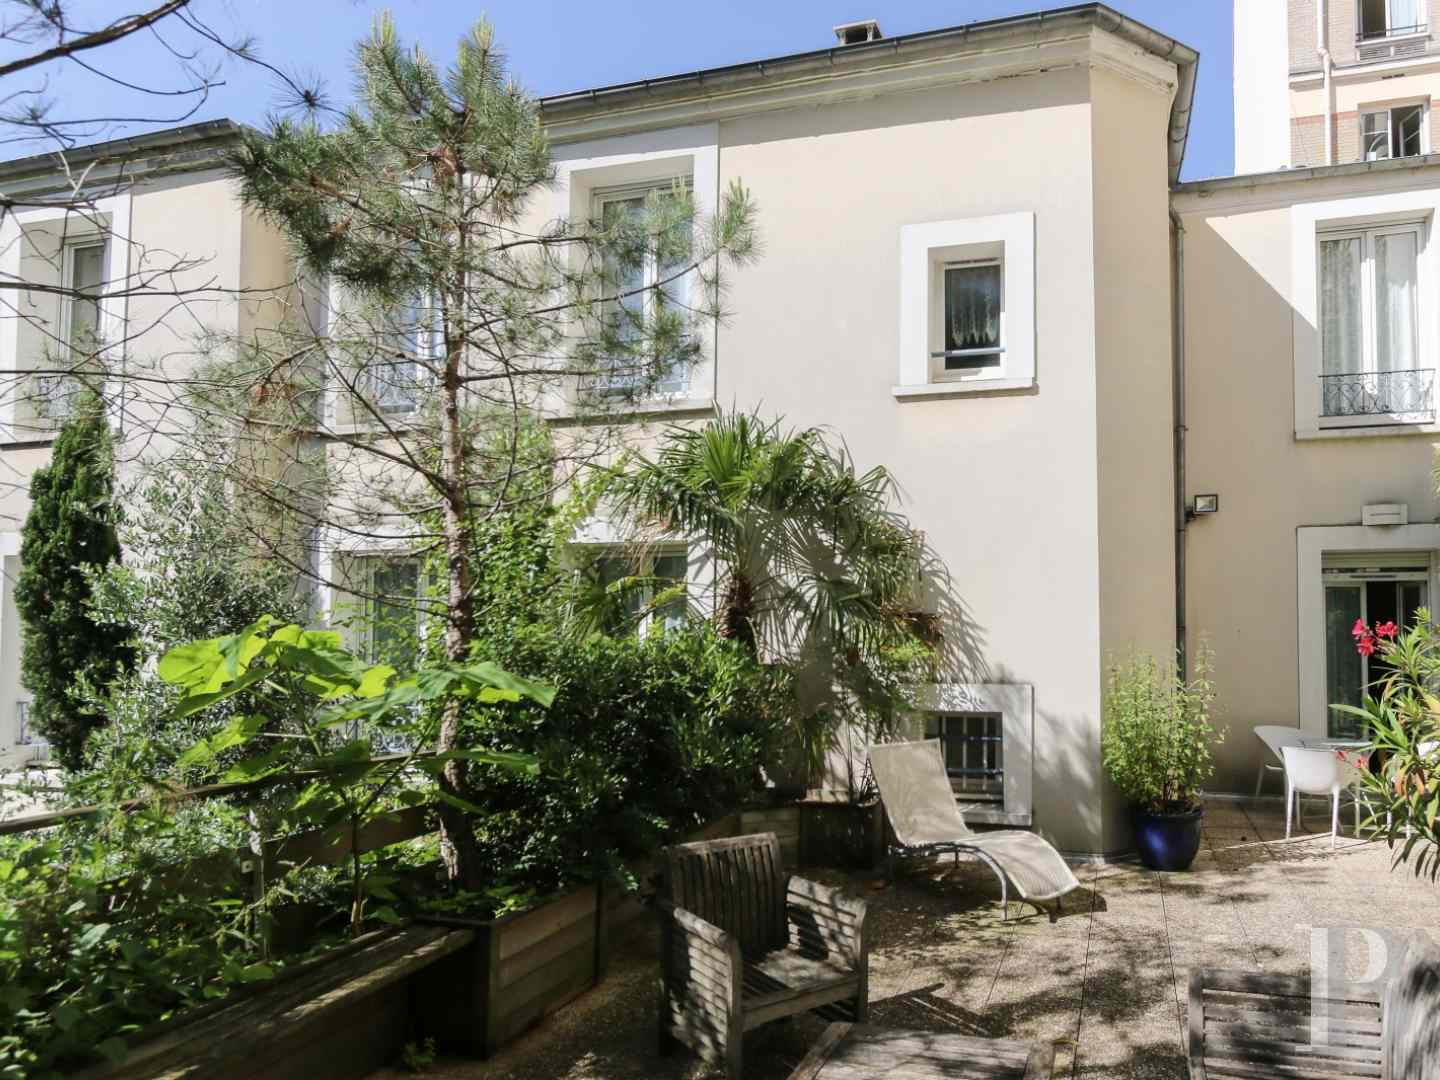 houses for sale paris 18th arrondissement - 3 zoom